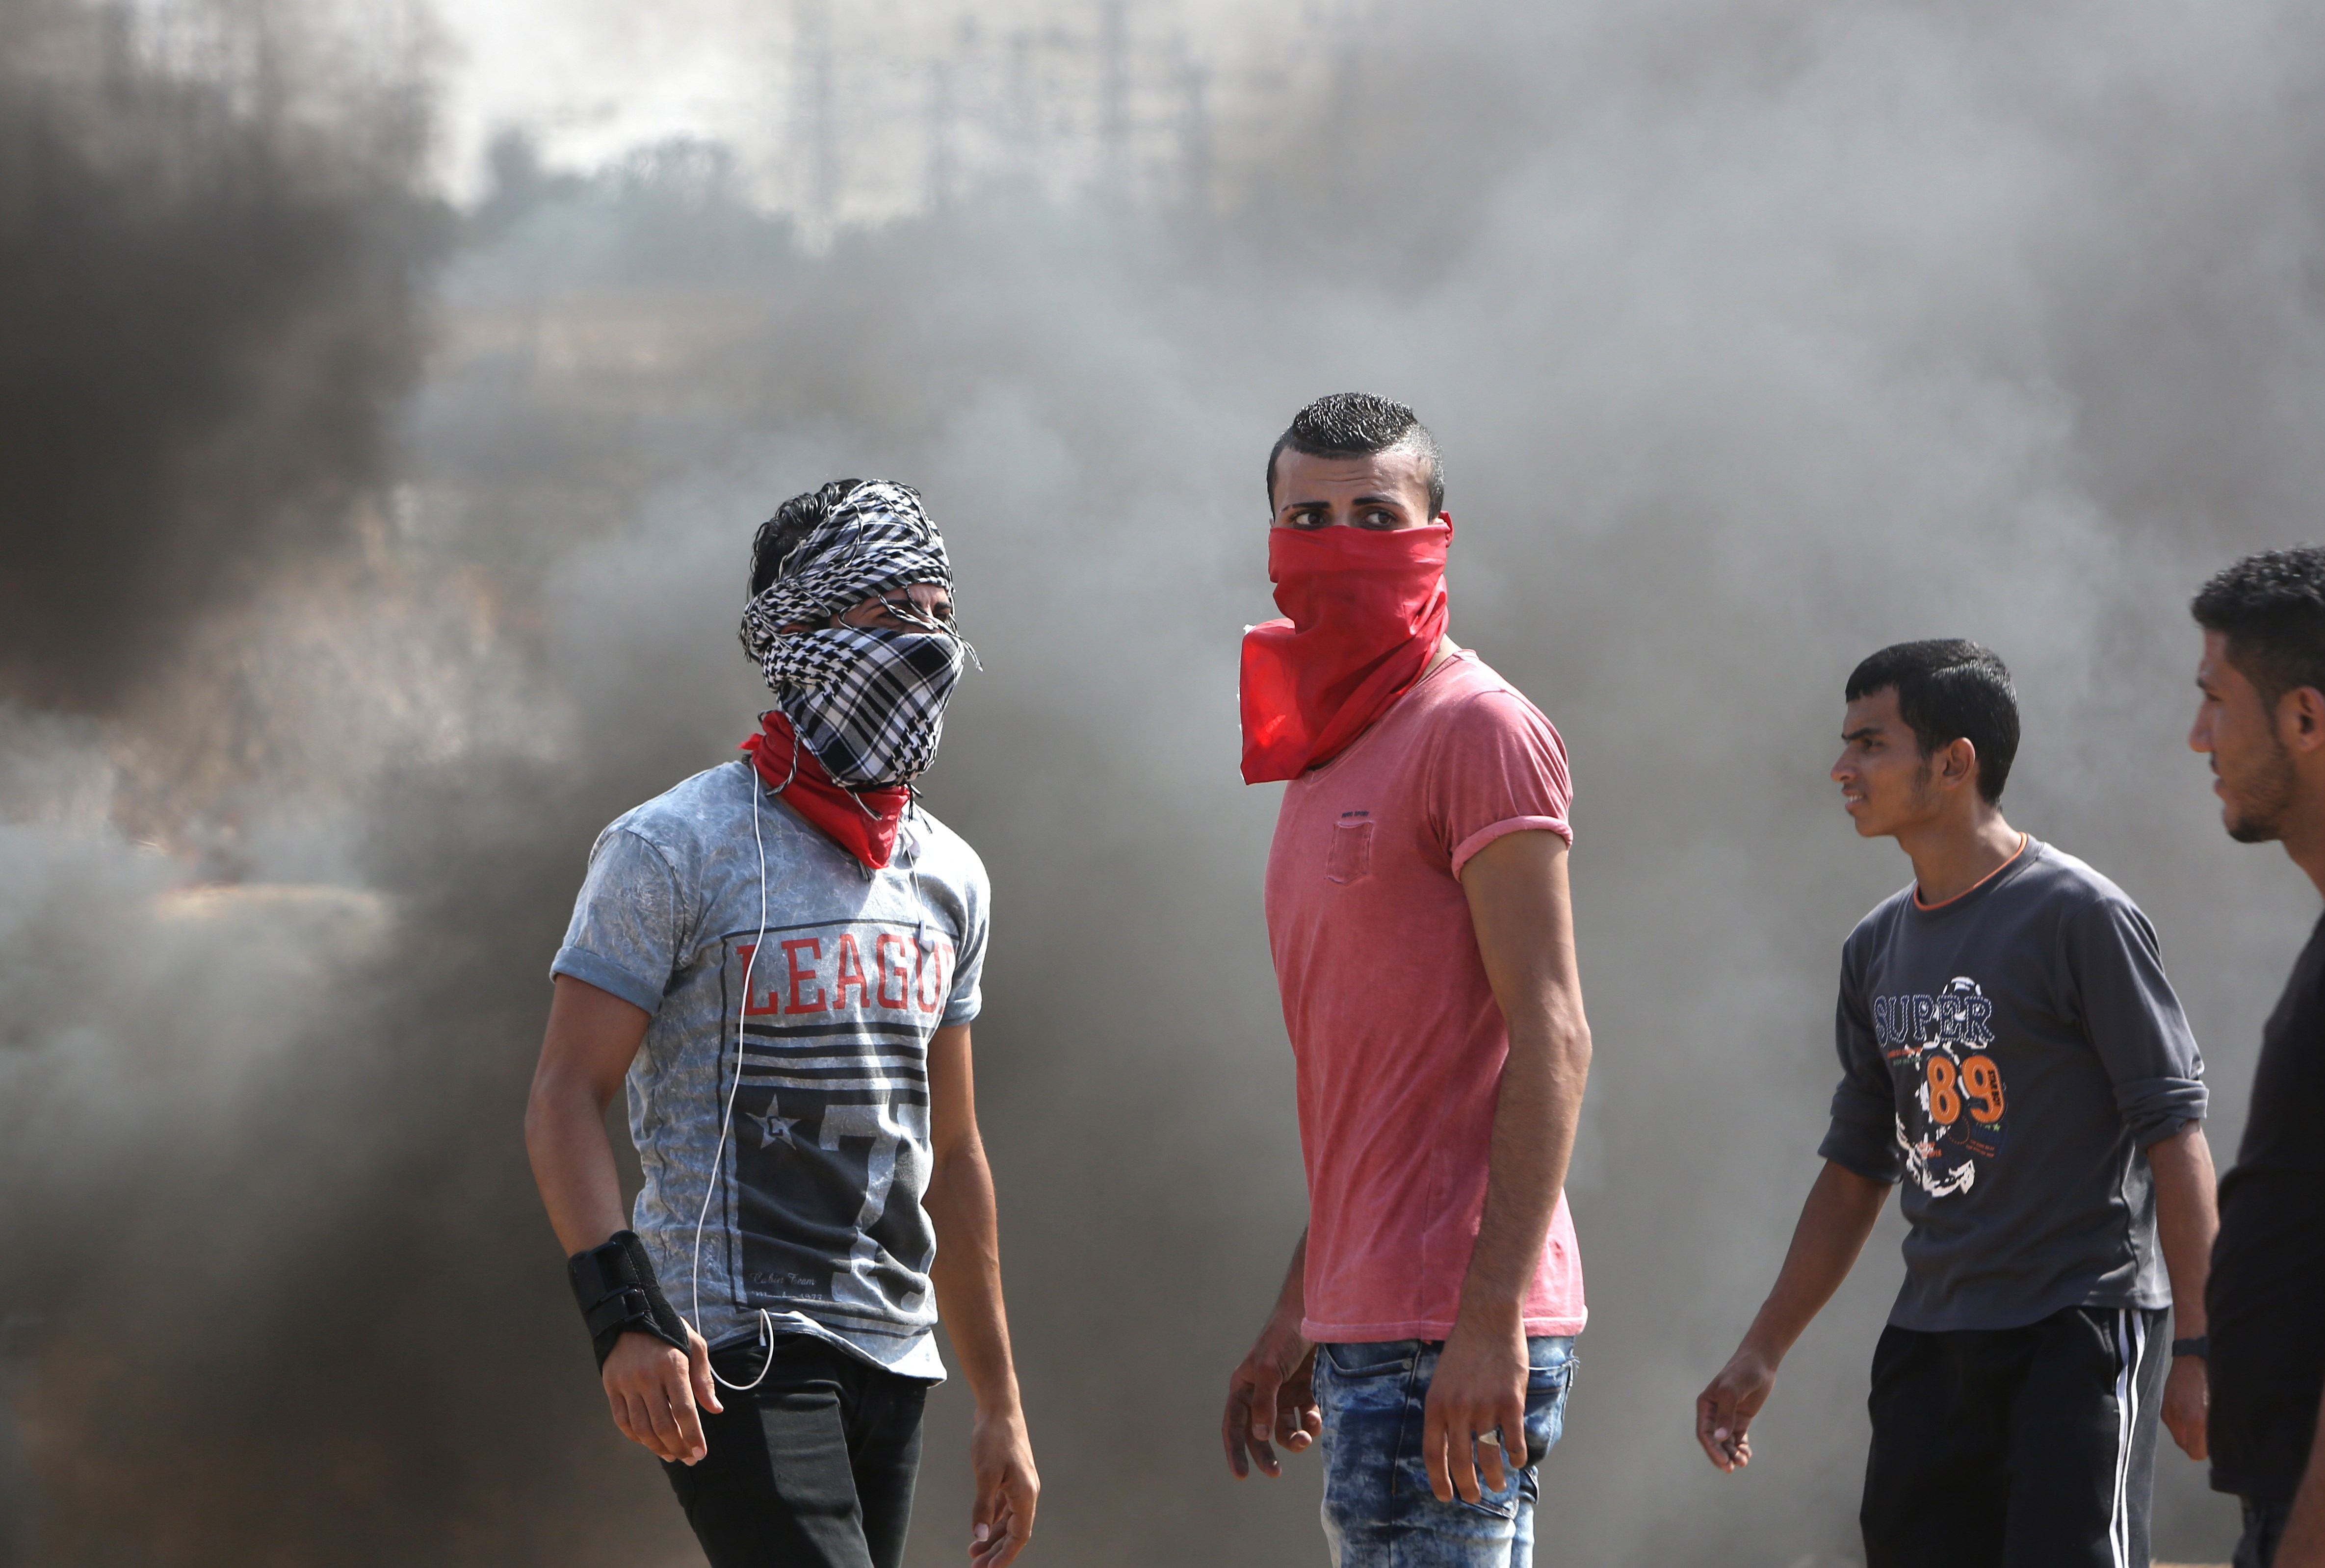 Palestinian protesters stand amid smoke during clashes with Israeli security forces near the Nahal Oz border crossing with Israel, east of Gaza City on Oct. 10, 2015.